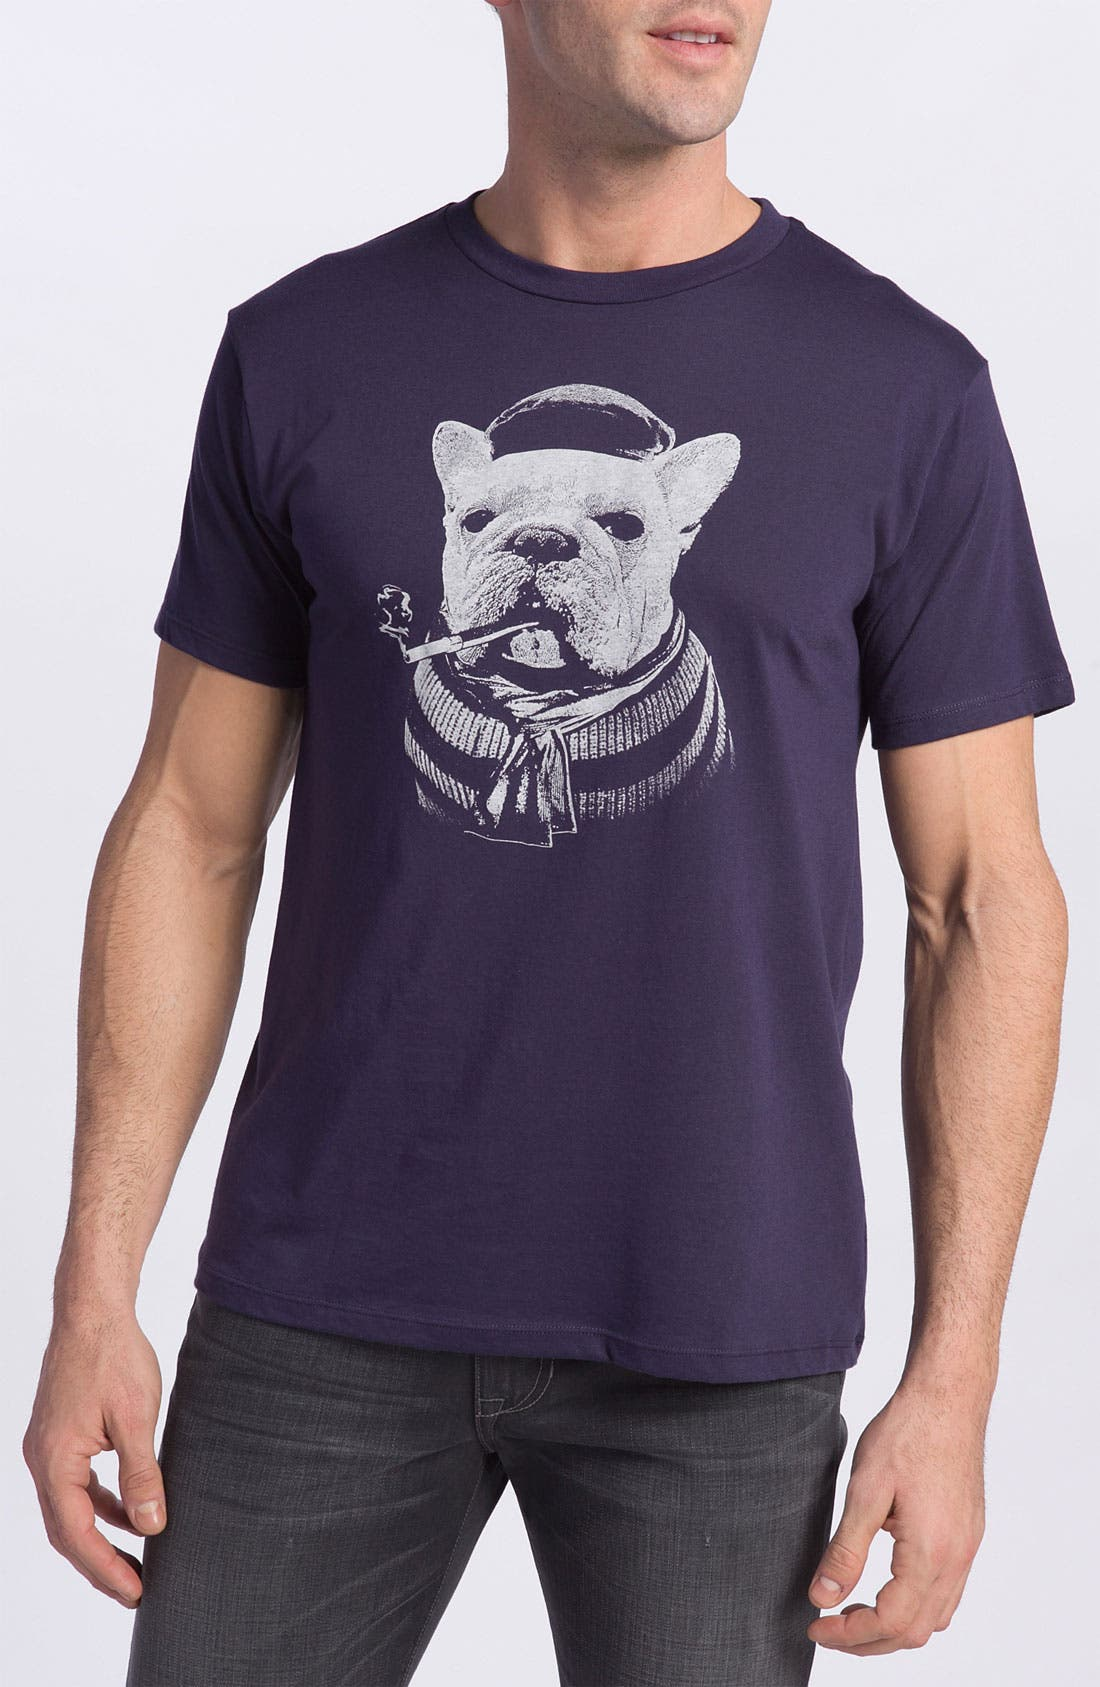 Main Image - Headline Shirts 'French Bulldog' T-Shirt